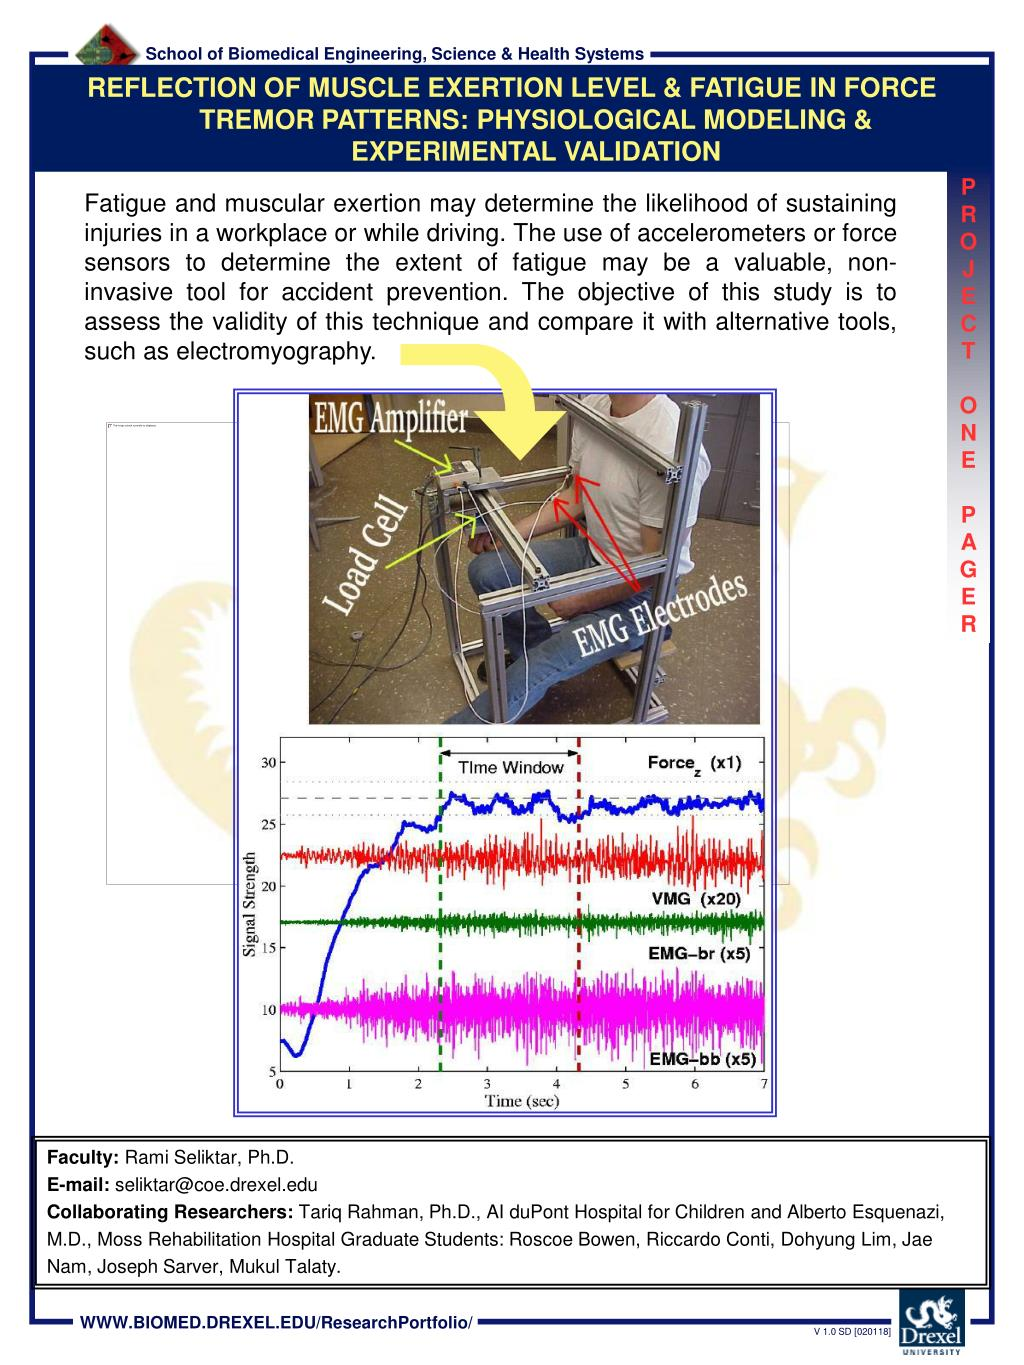 REFLECTION OF MUSCLE EXERTION LEVEL & FATIGUE IN FORCE TREMOR PATTERNS: PHYSIOLOGICAL MODELING & EXPERIMENTAL VALIDATION